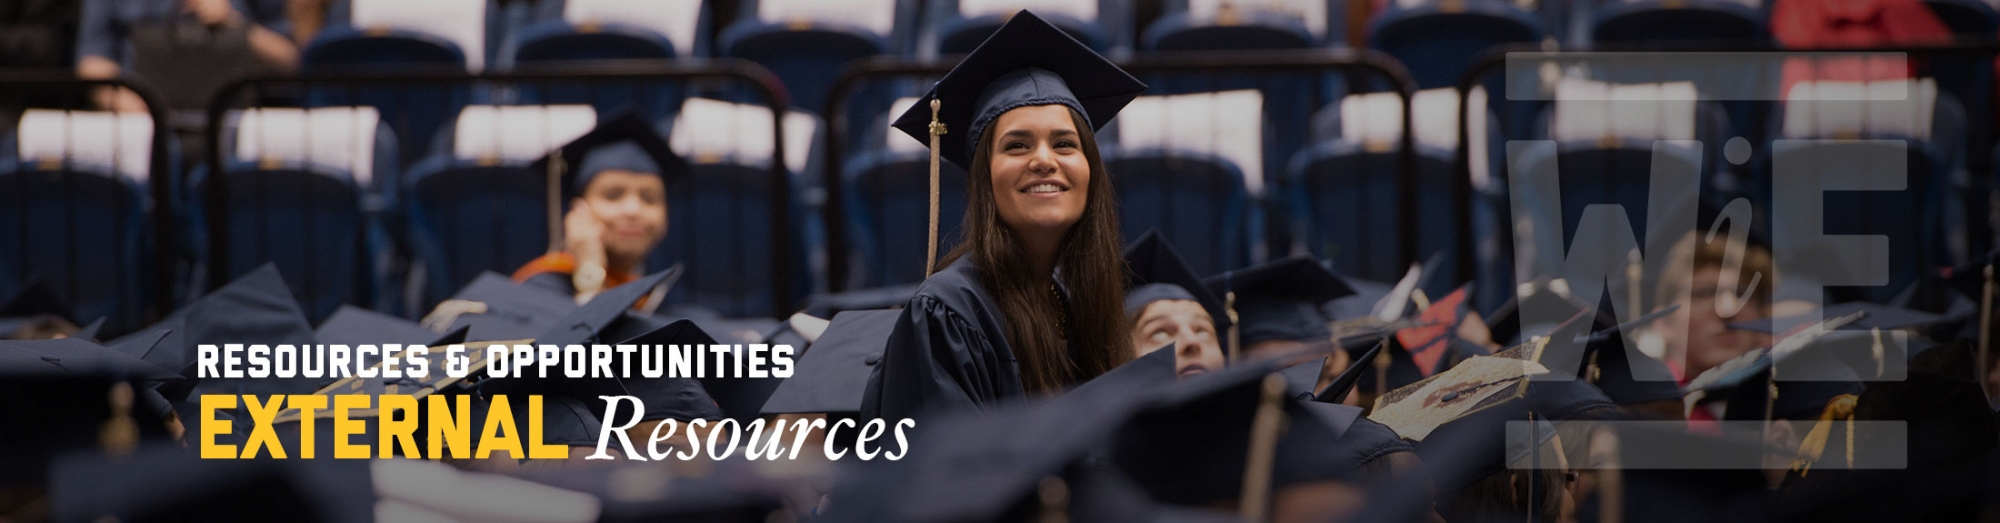 WiE External Resources. A SEAS graduate wearing cap and gown smiles during commencement ceremonies.